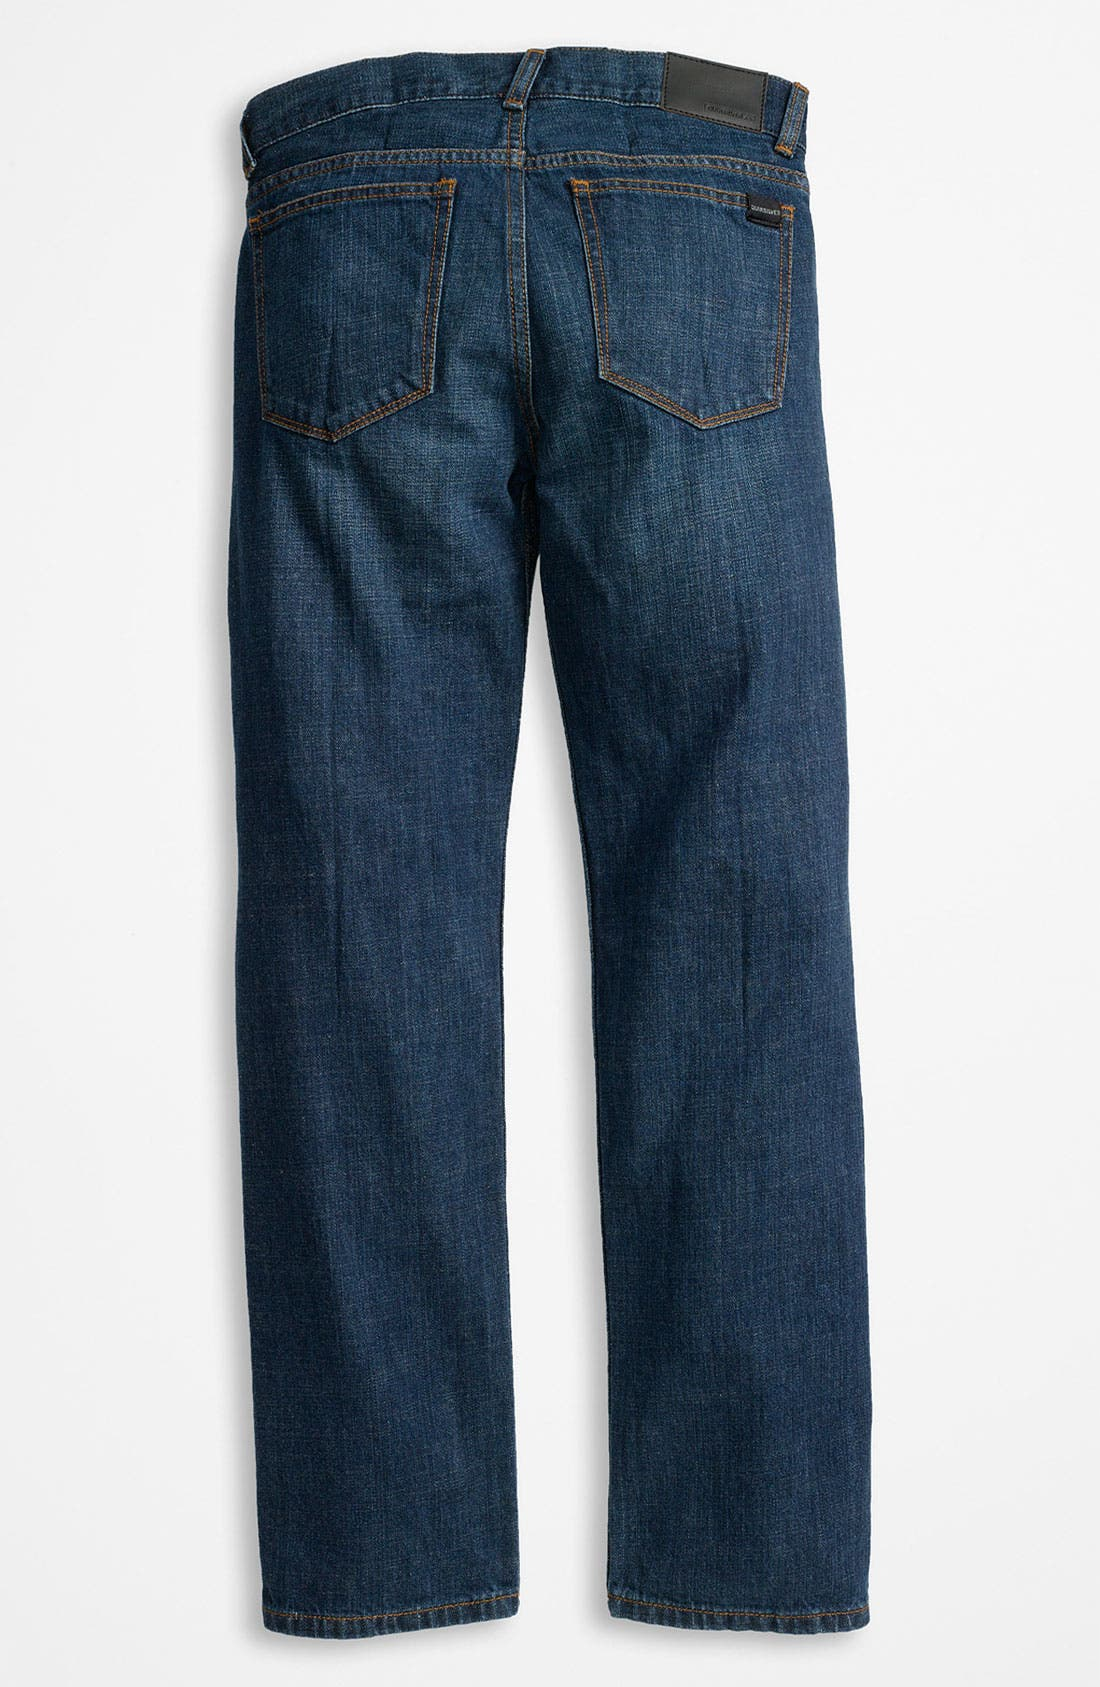 Alternate Image 1 Selected - Quiksilver 'Revolver' Jeans (Big Boys)